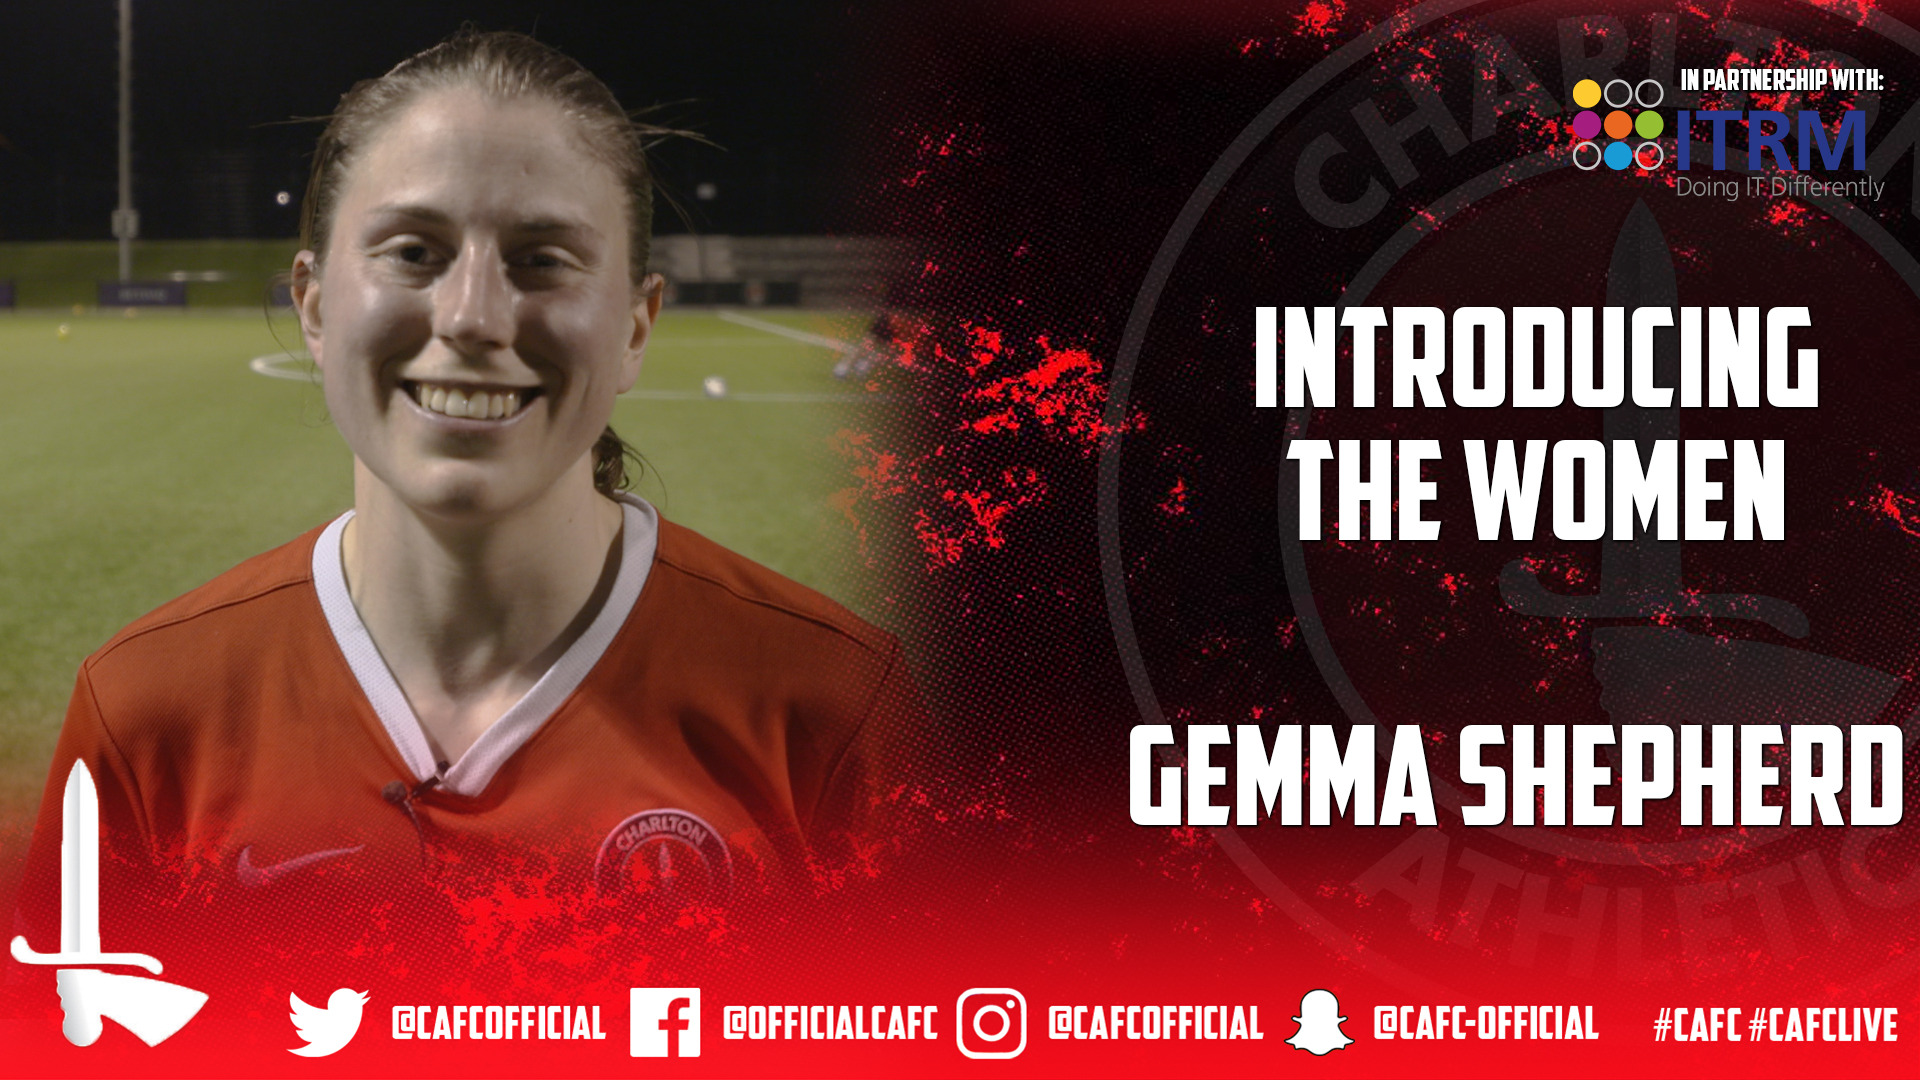 INTRODUCING THE WOMEN | Gemma Shepherd